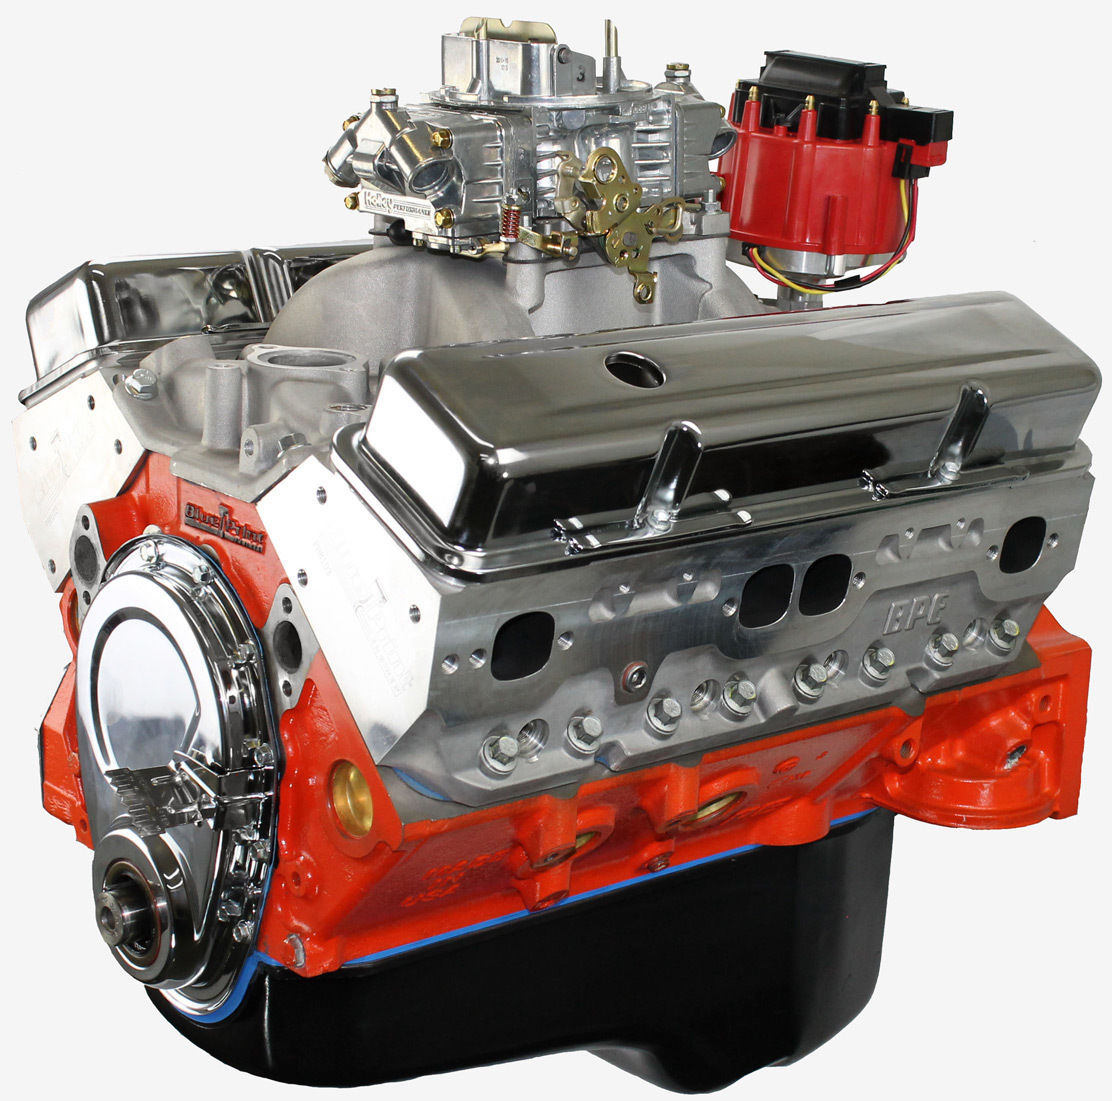 508 hp chevrolet 400 not chev 383 new dressed crate engine 508 hp chevrolet 400 not chev 383 new dressed crate engine bp4002ctc1 blueprint engines malvernweather Image collections